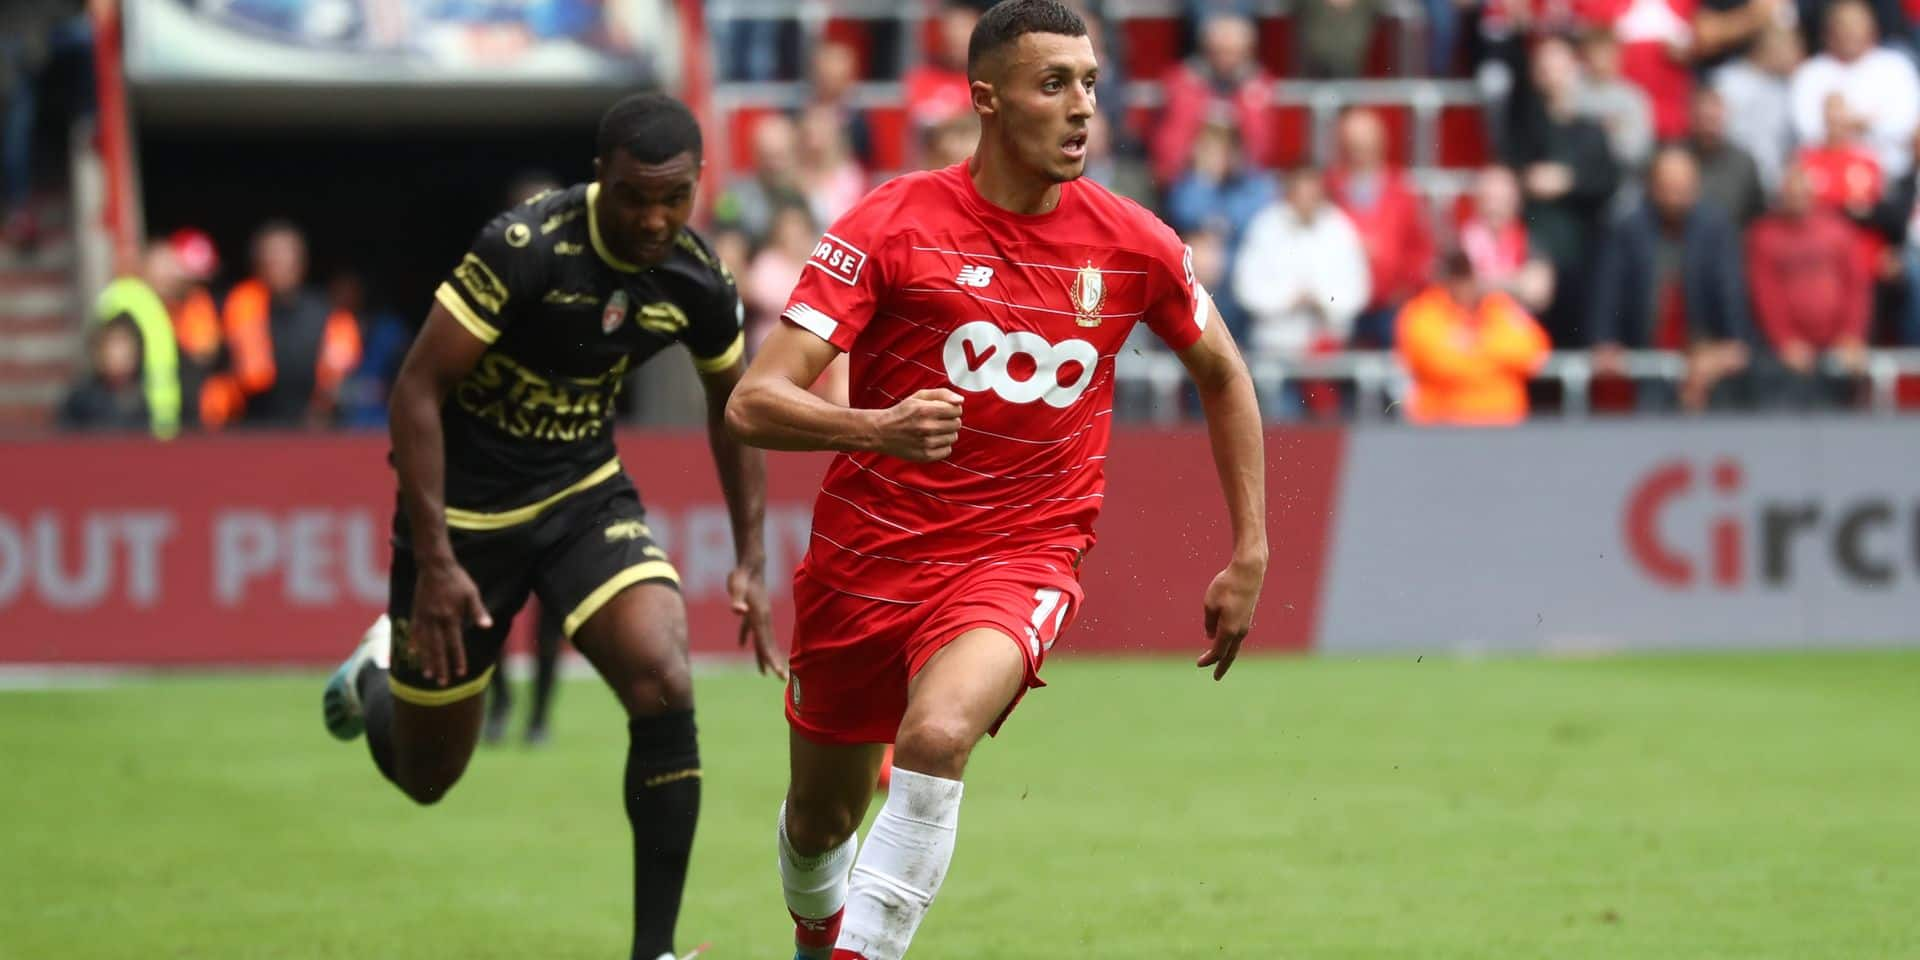 Standard's Selim Amallah pictured in action during a soccer match between Standard de Liege and Excel Mouscron, Sunday 18 August 2019 in Liege, on the fourth day of the 'Jupiler Pro League' Belgian soccer championship season 2019-2020. BELGA PHOTO VIRGINIE LEFOUR